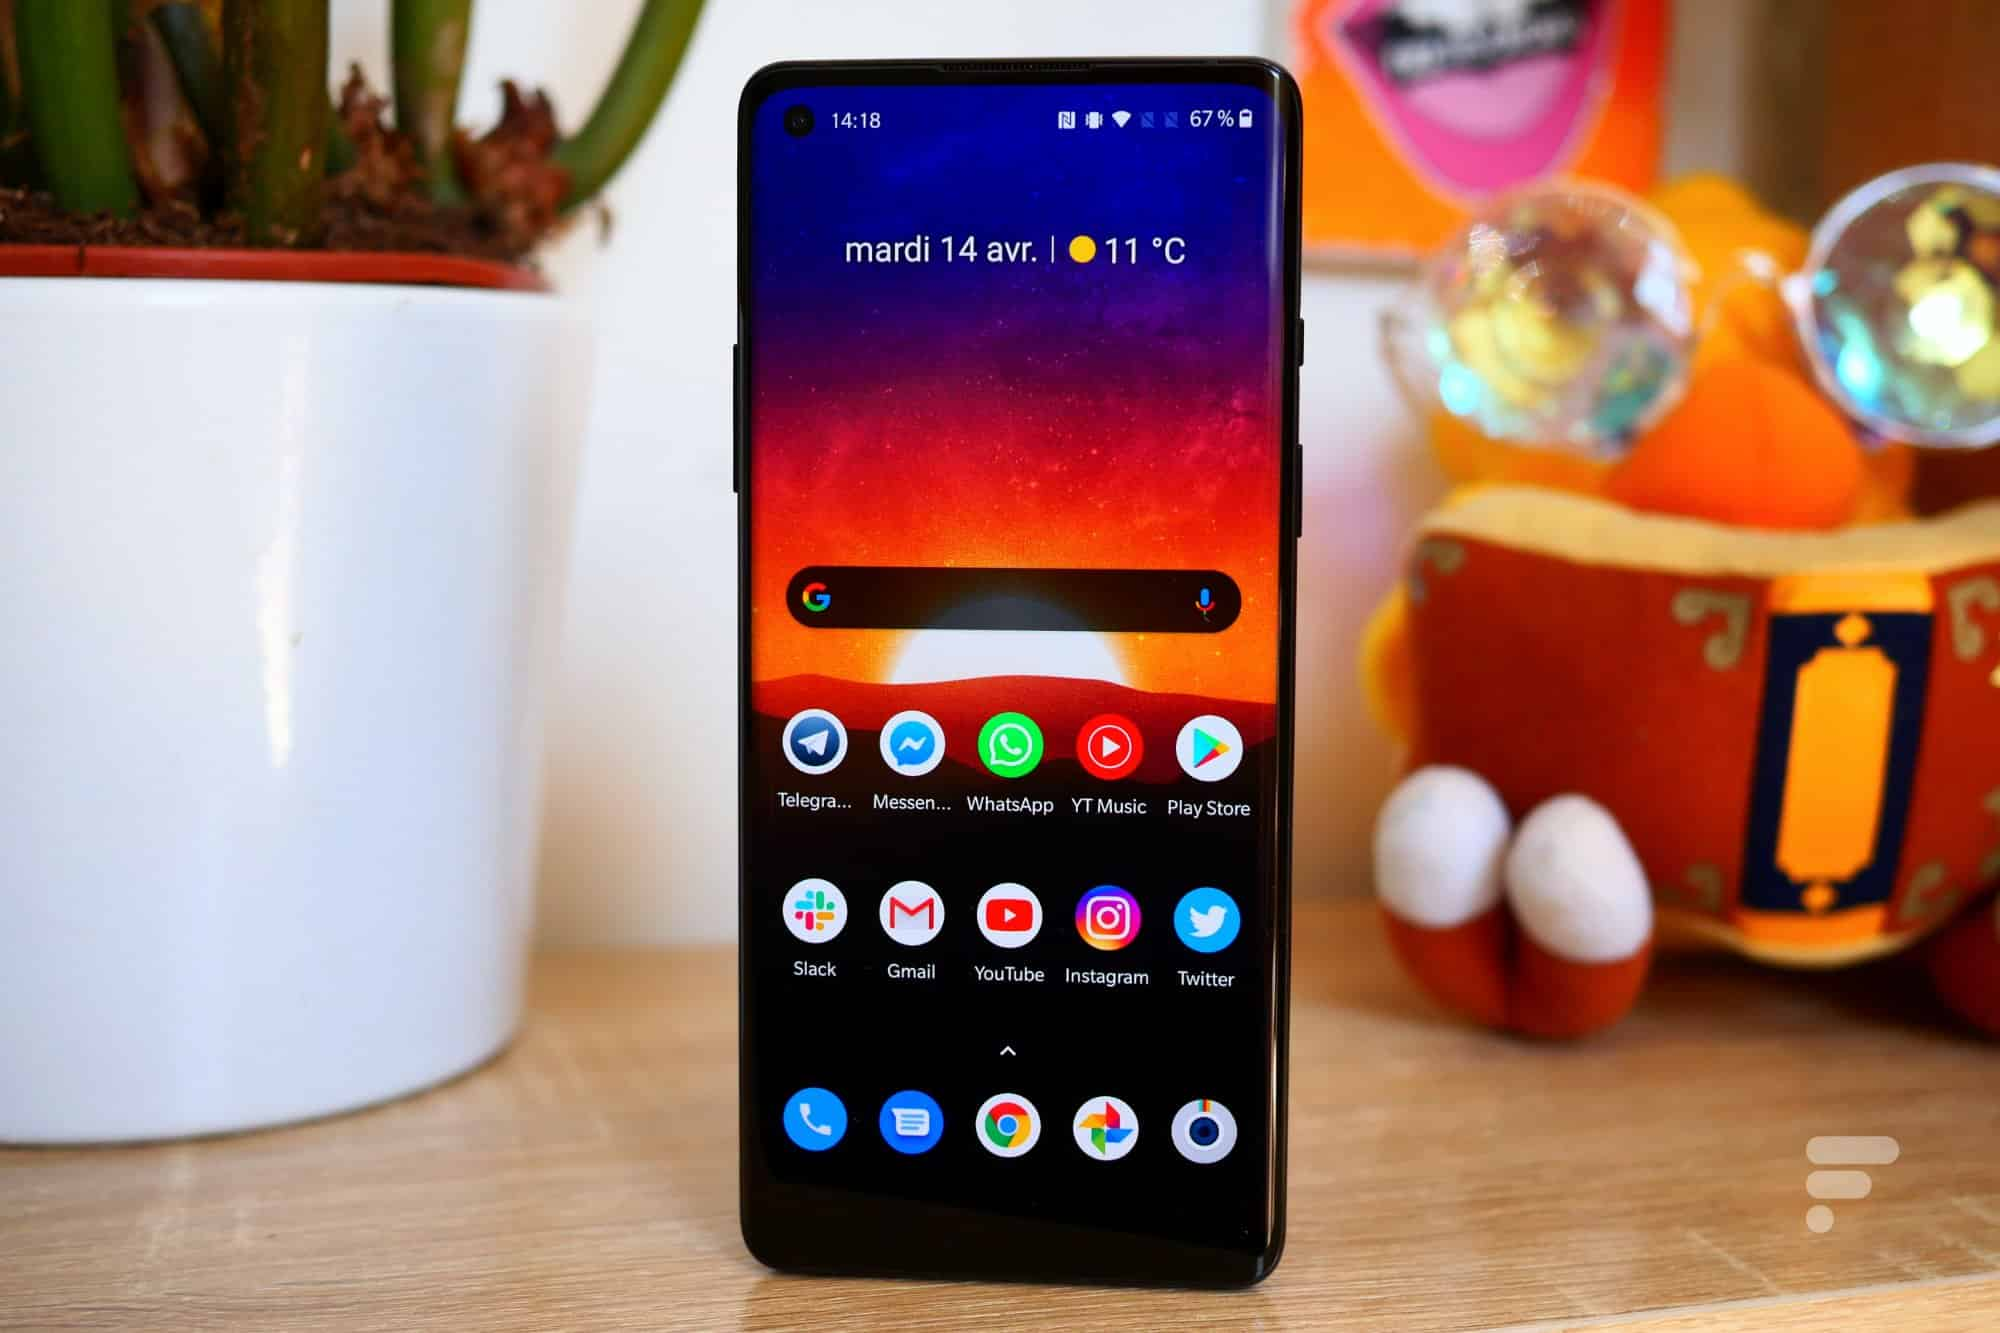 The OnePlus 8 screen